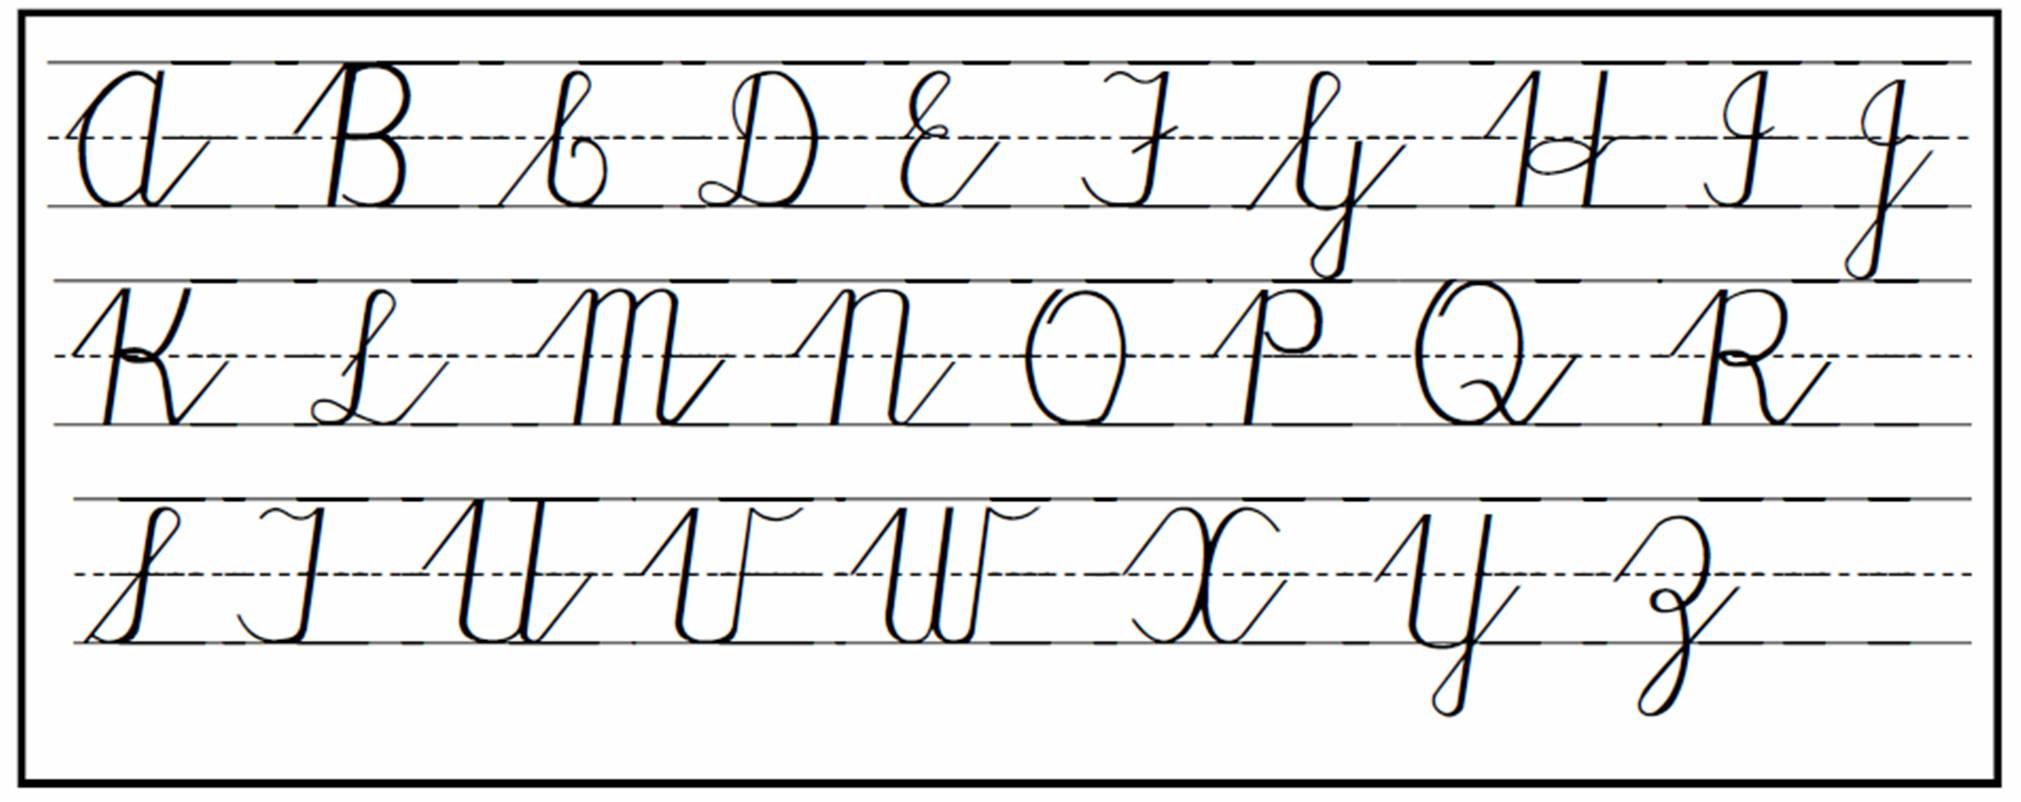 Cursive Writing Alphabet Chart Worksheet Script: calligraphy pages